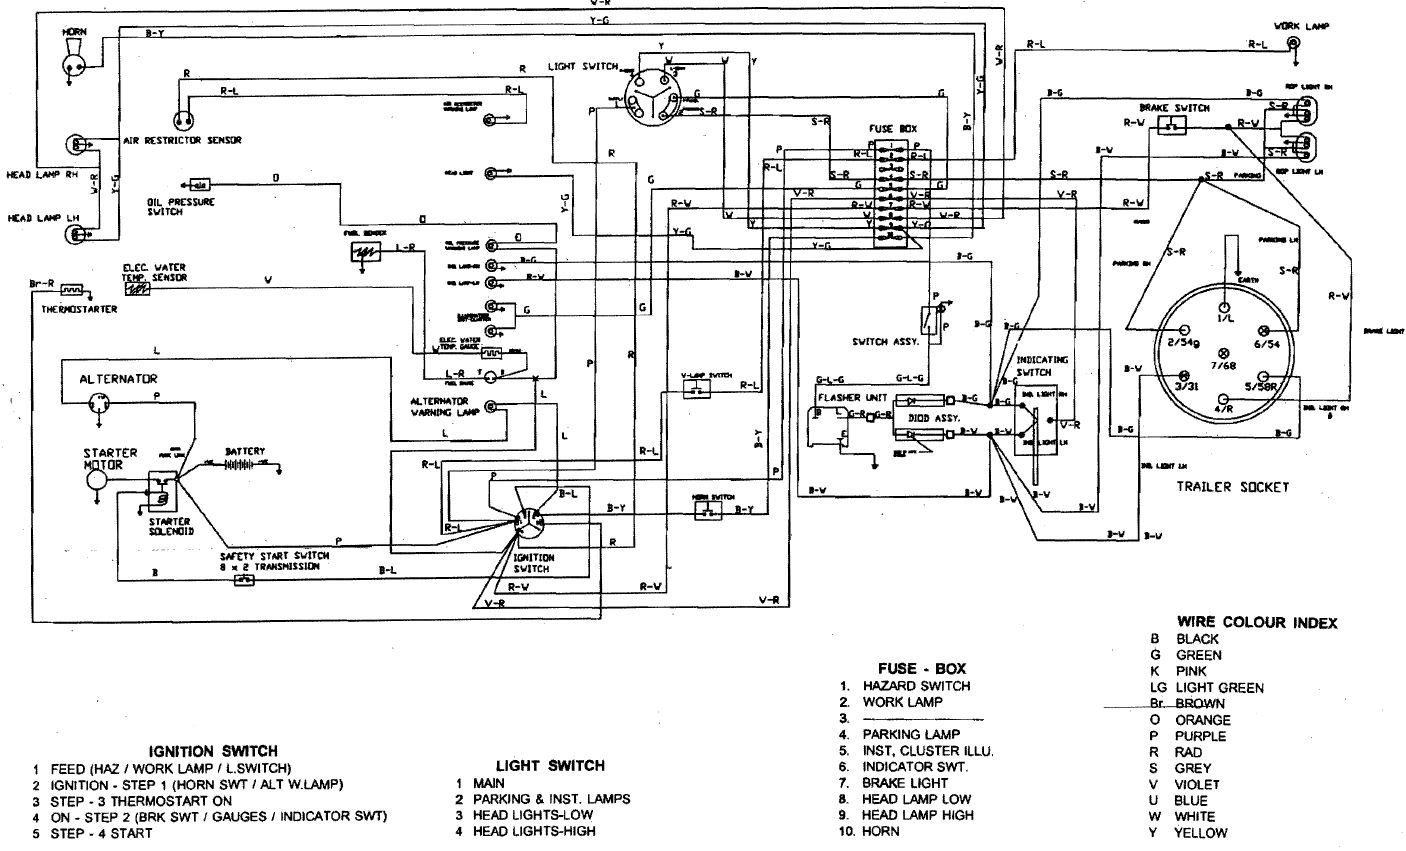 Volvo 850 Wiring Diagram Free Picture Schematic